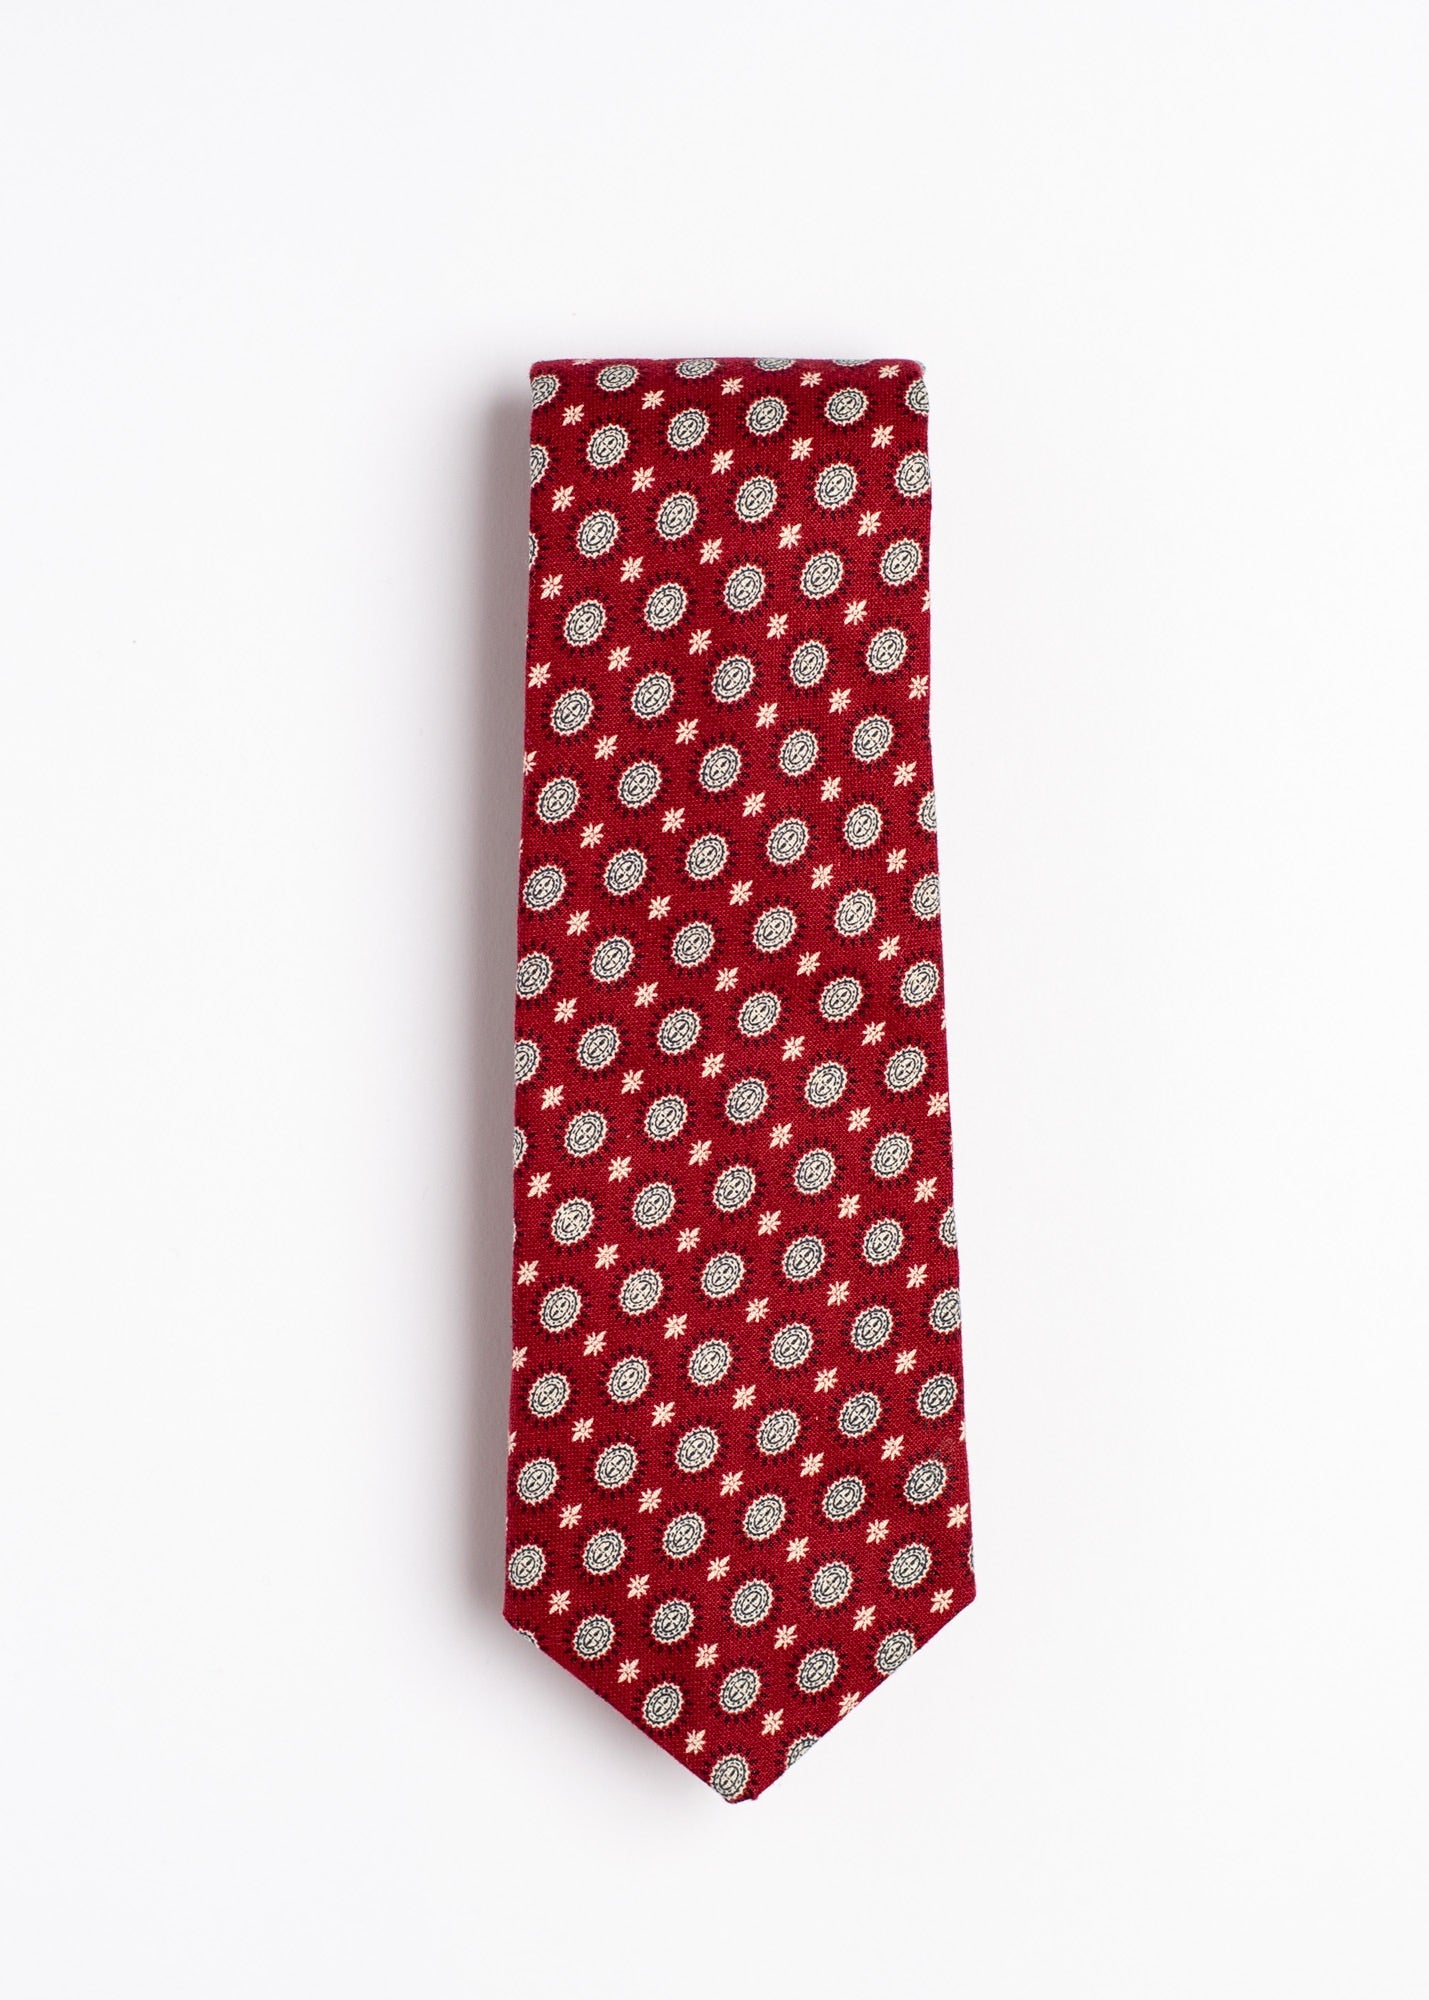 red and white foulard pattern tie - Oxford Square